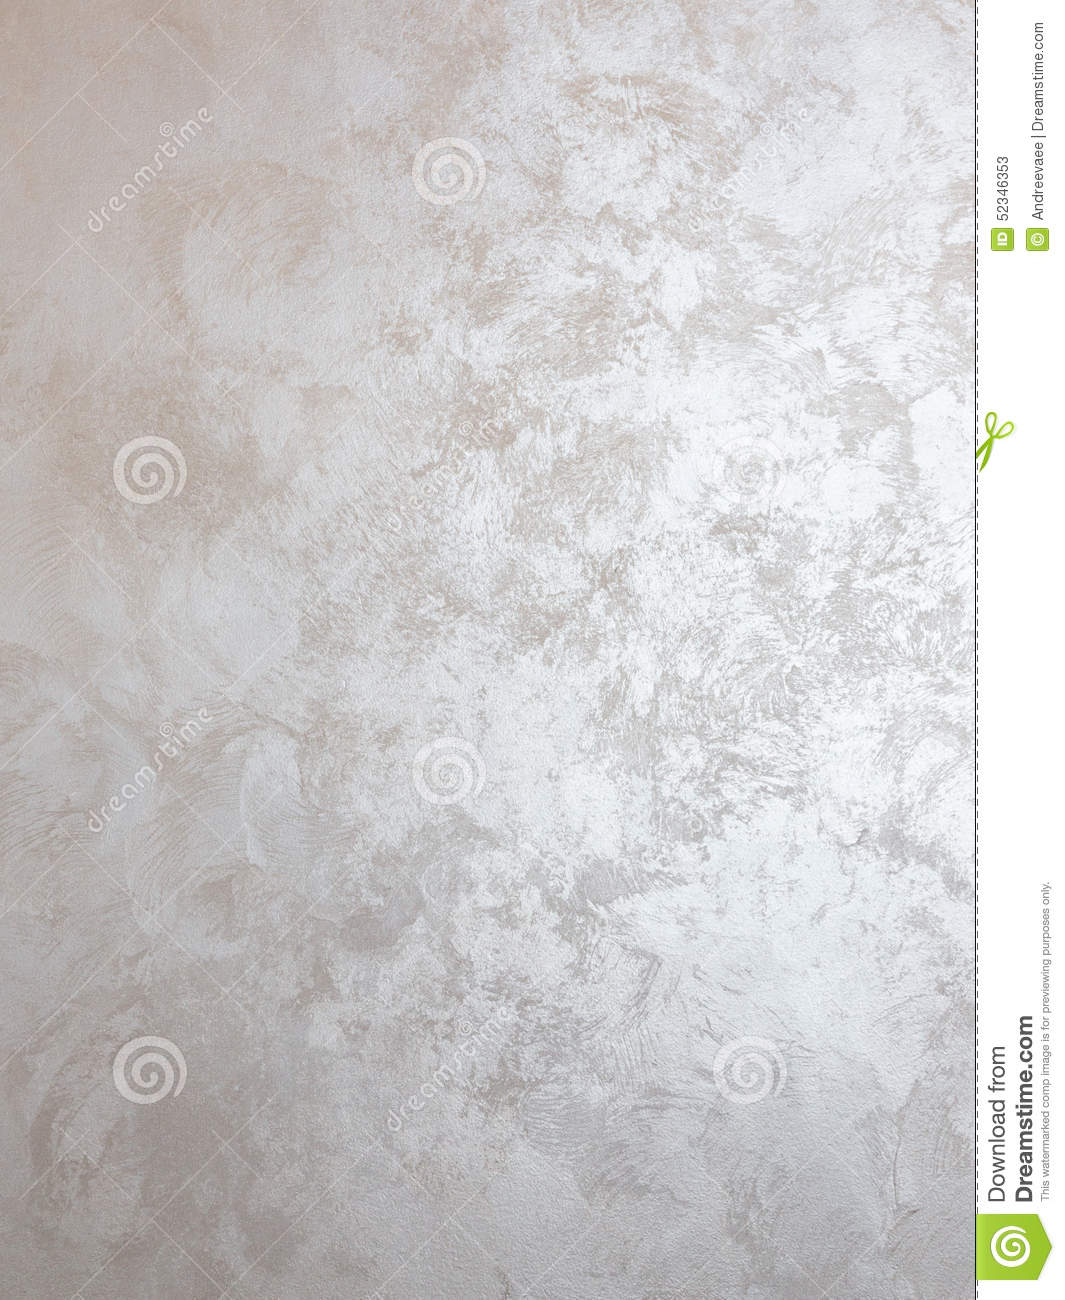 Silver paint on the wall stock image image of design for How to make silver paint